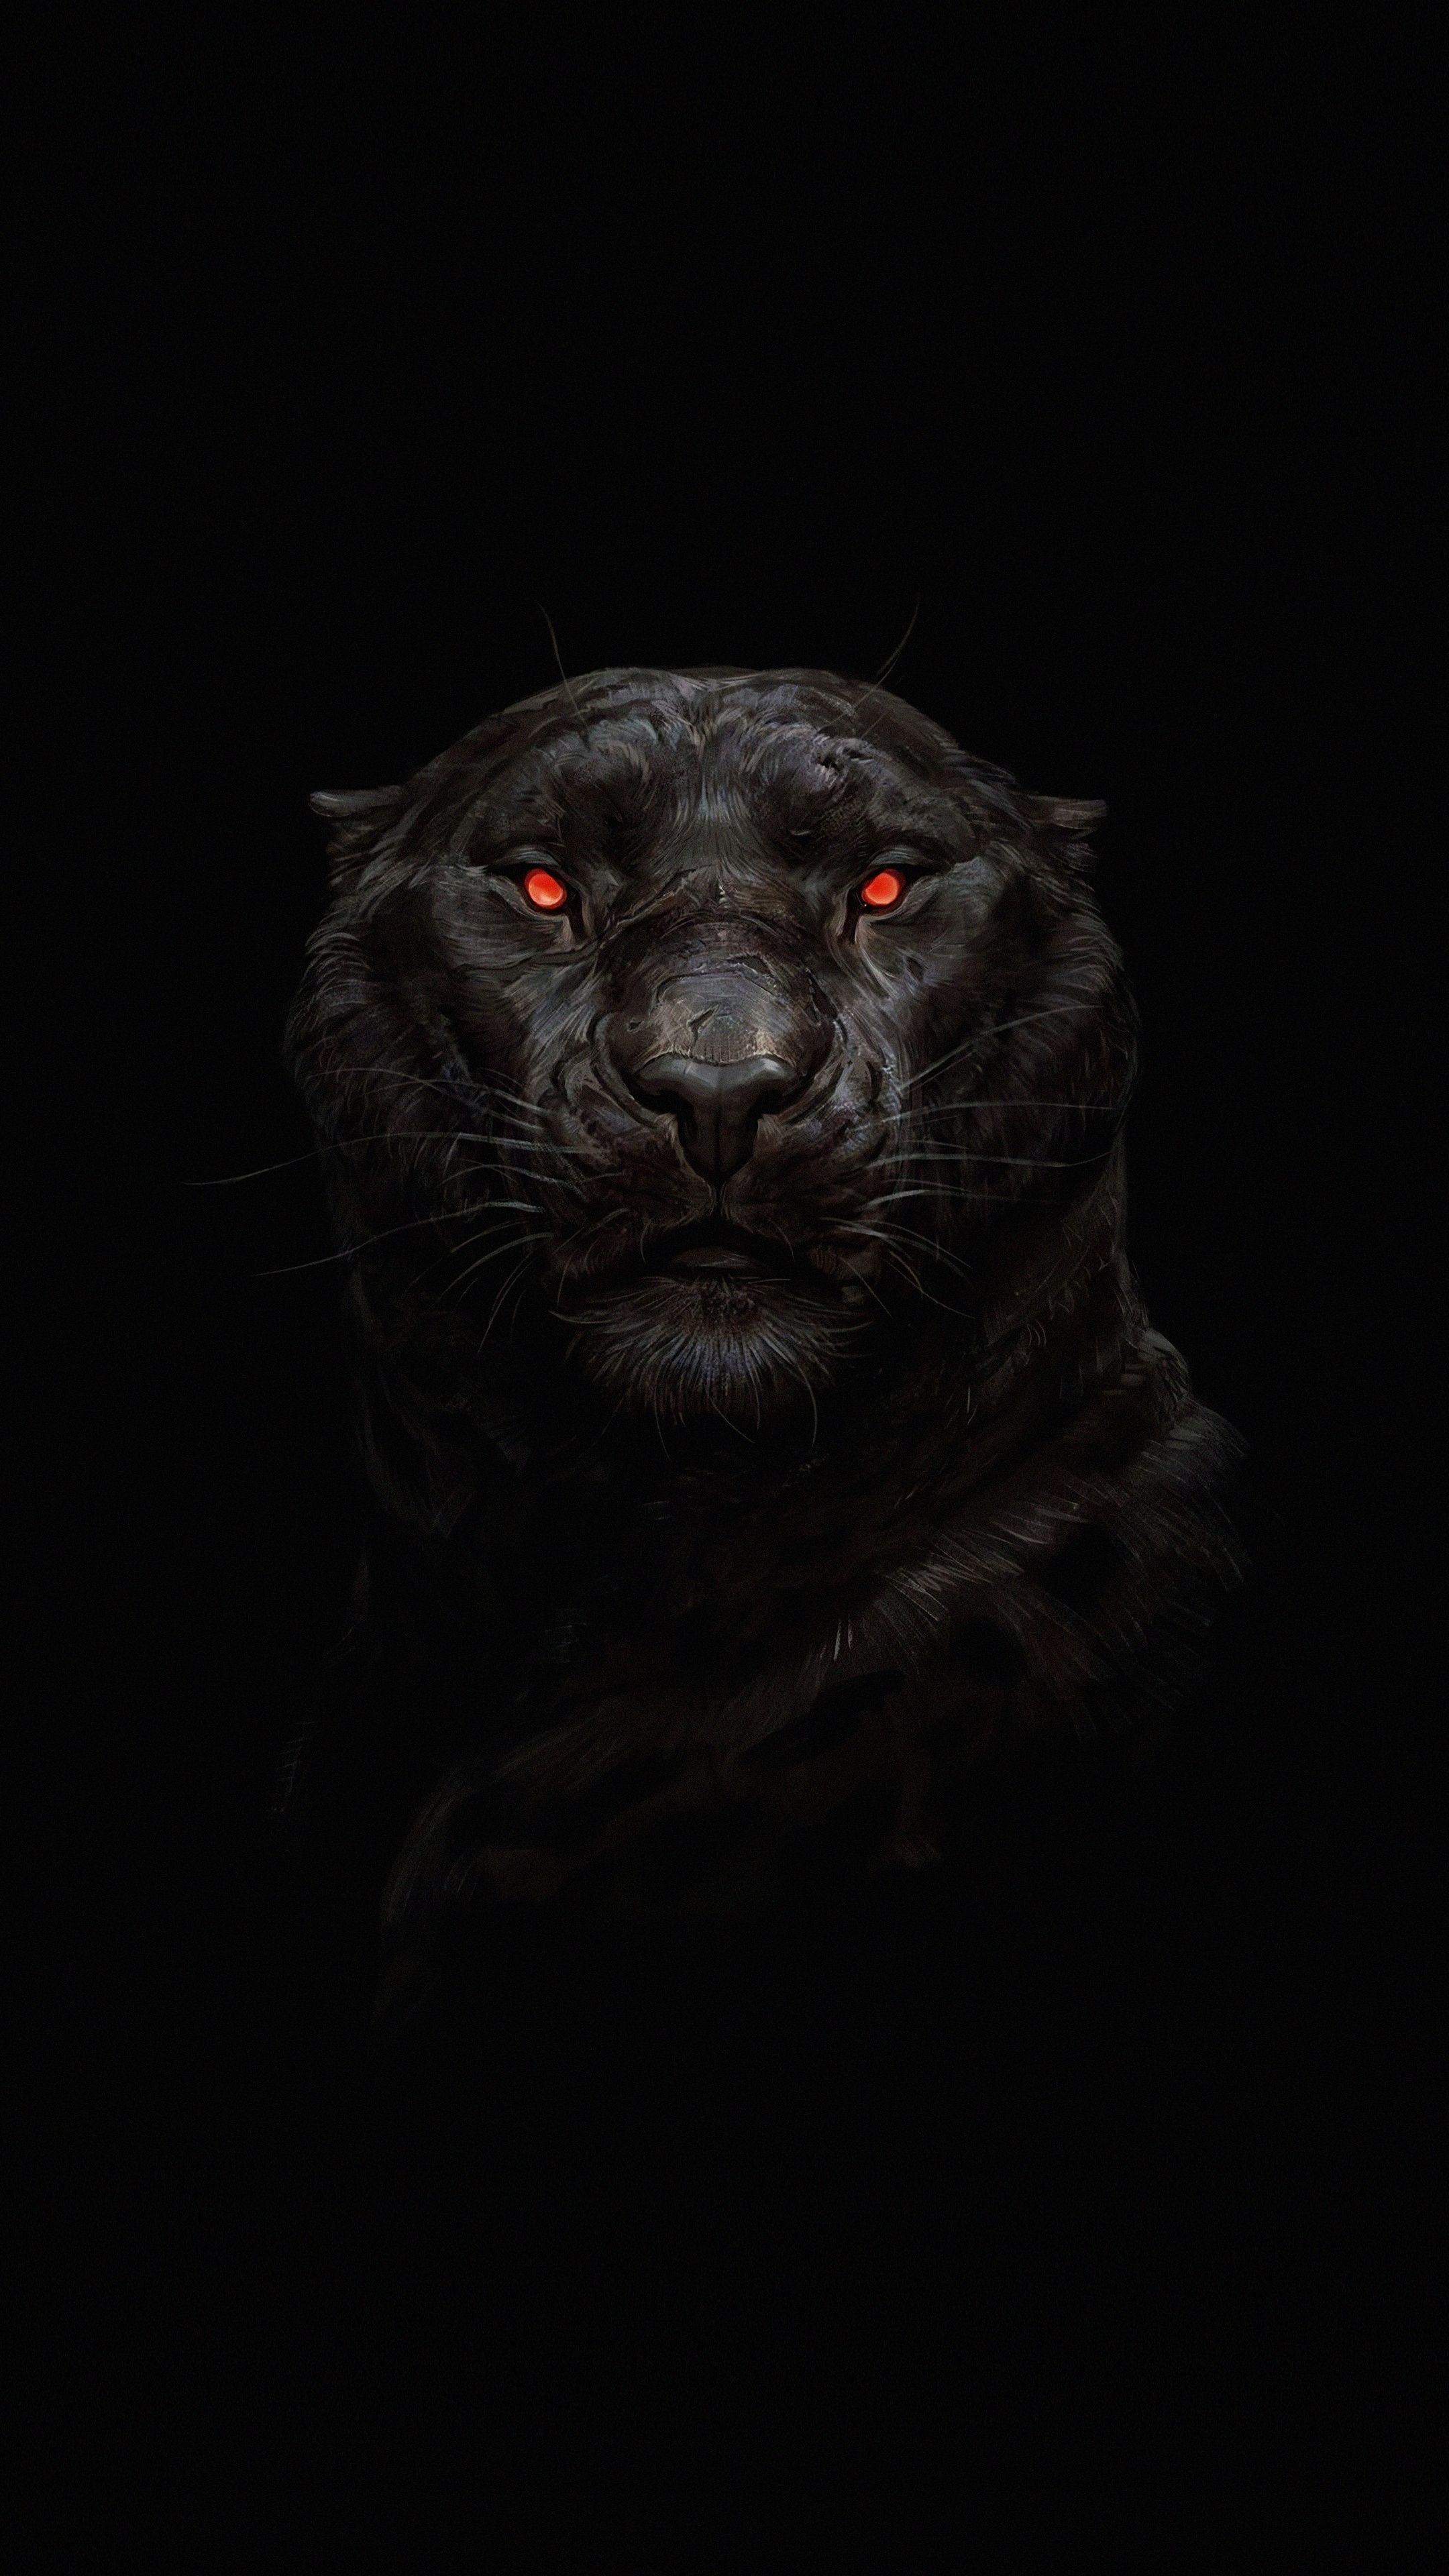 2160x3840 Tiger Glowing Red Eye Minimal Dark Wallpaper Dark Wallpaper Red And Black Wallpaper Black Panther Hd Wallpaper